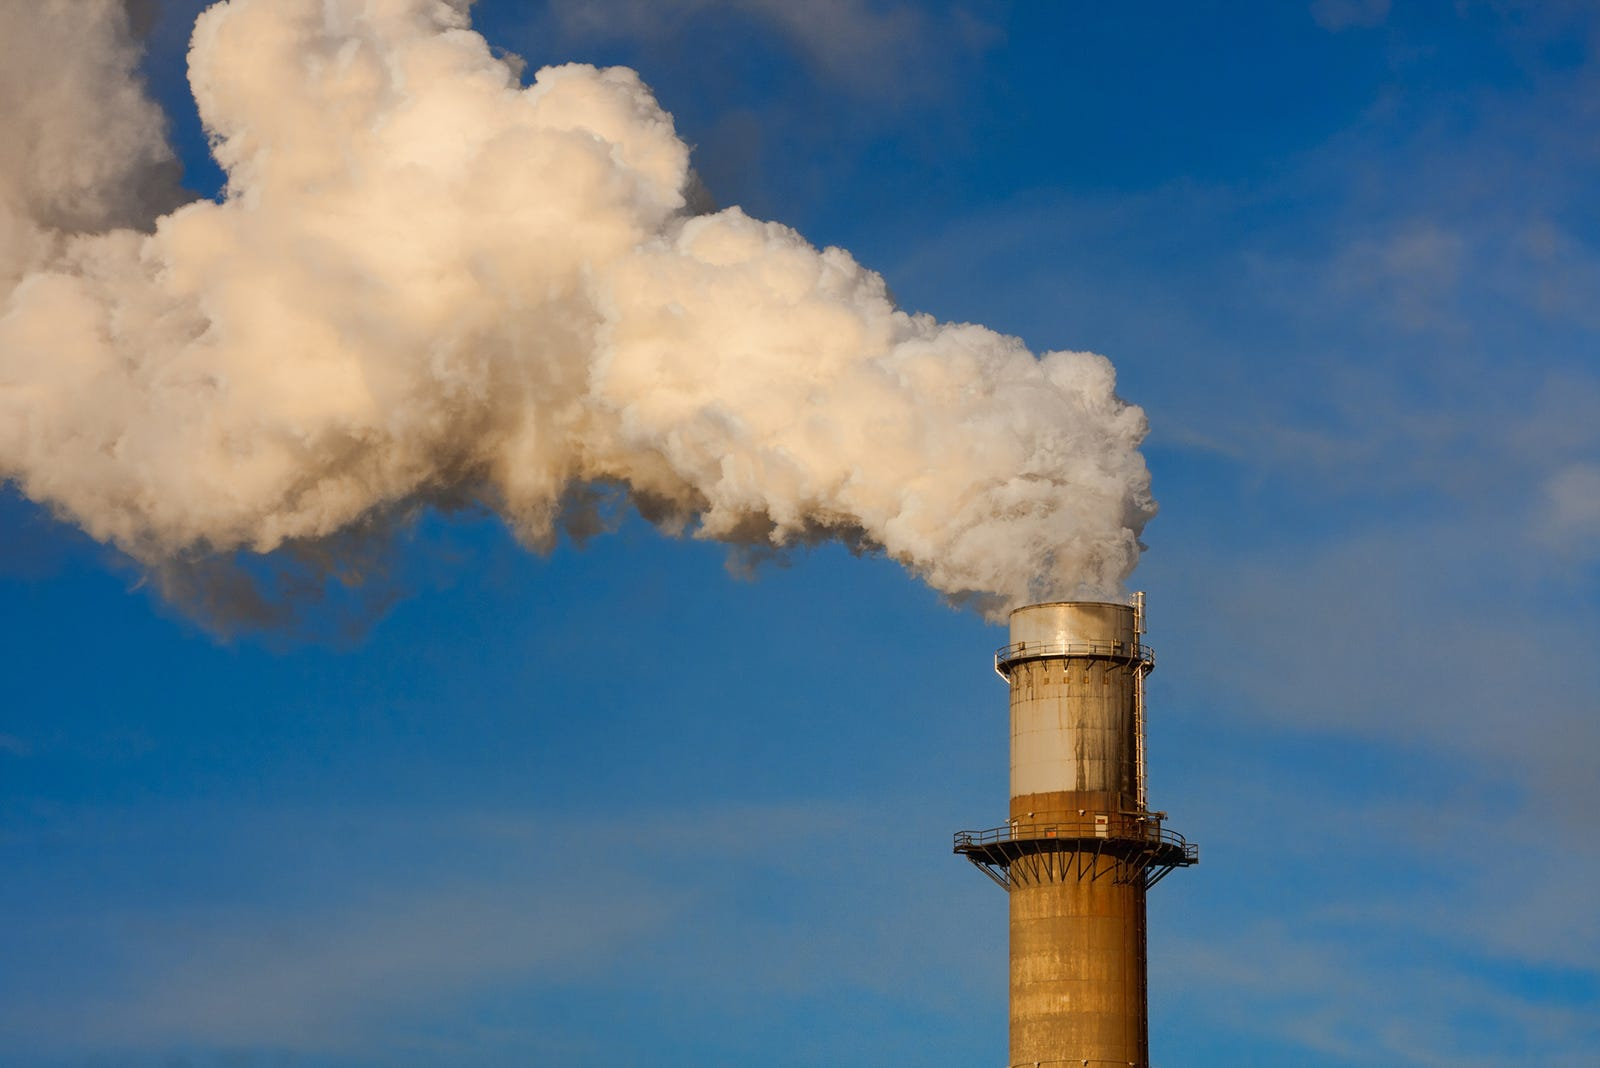 New environmental justice measures might revive cap-and-trade 2